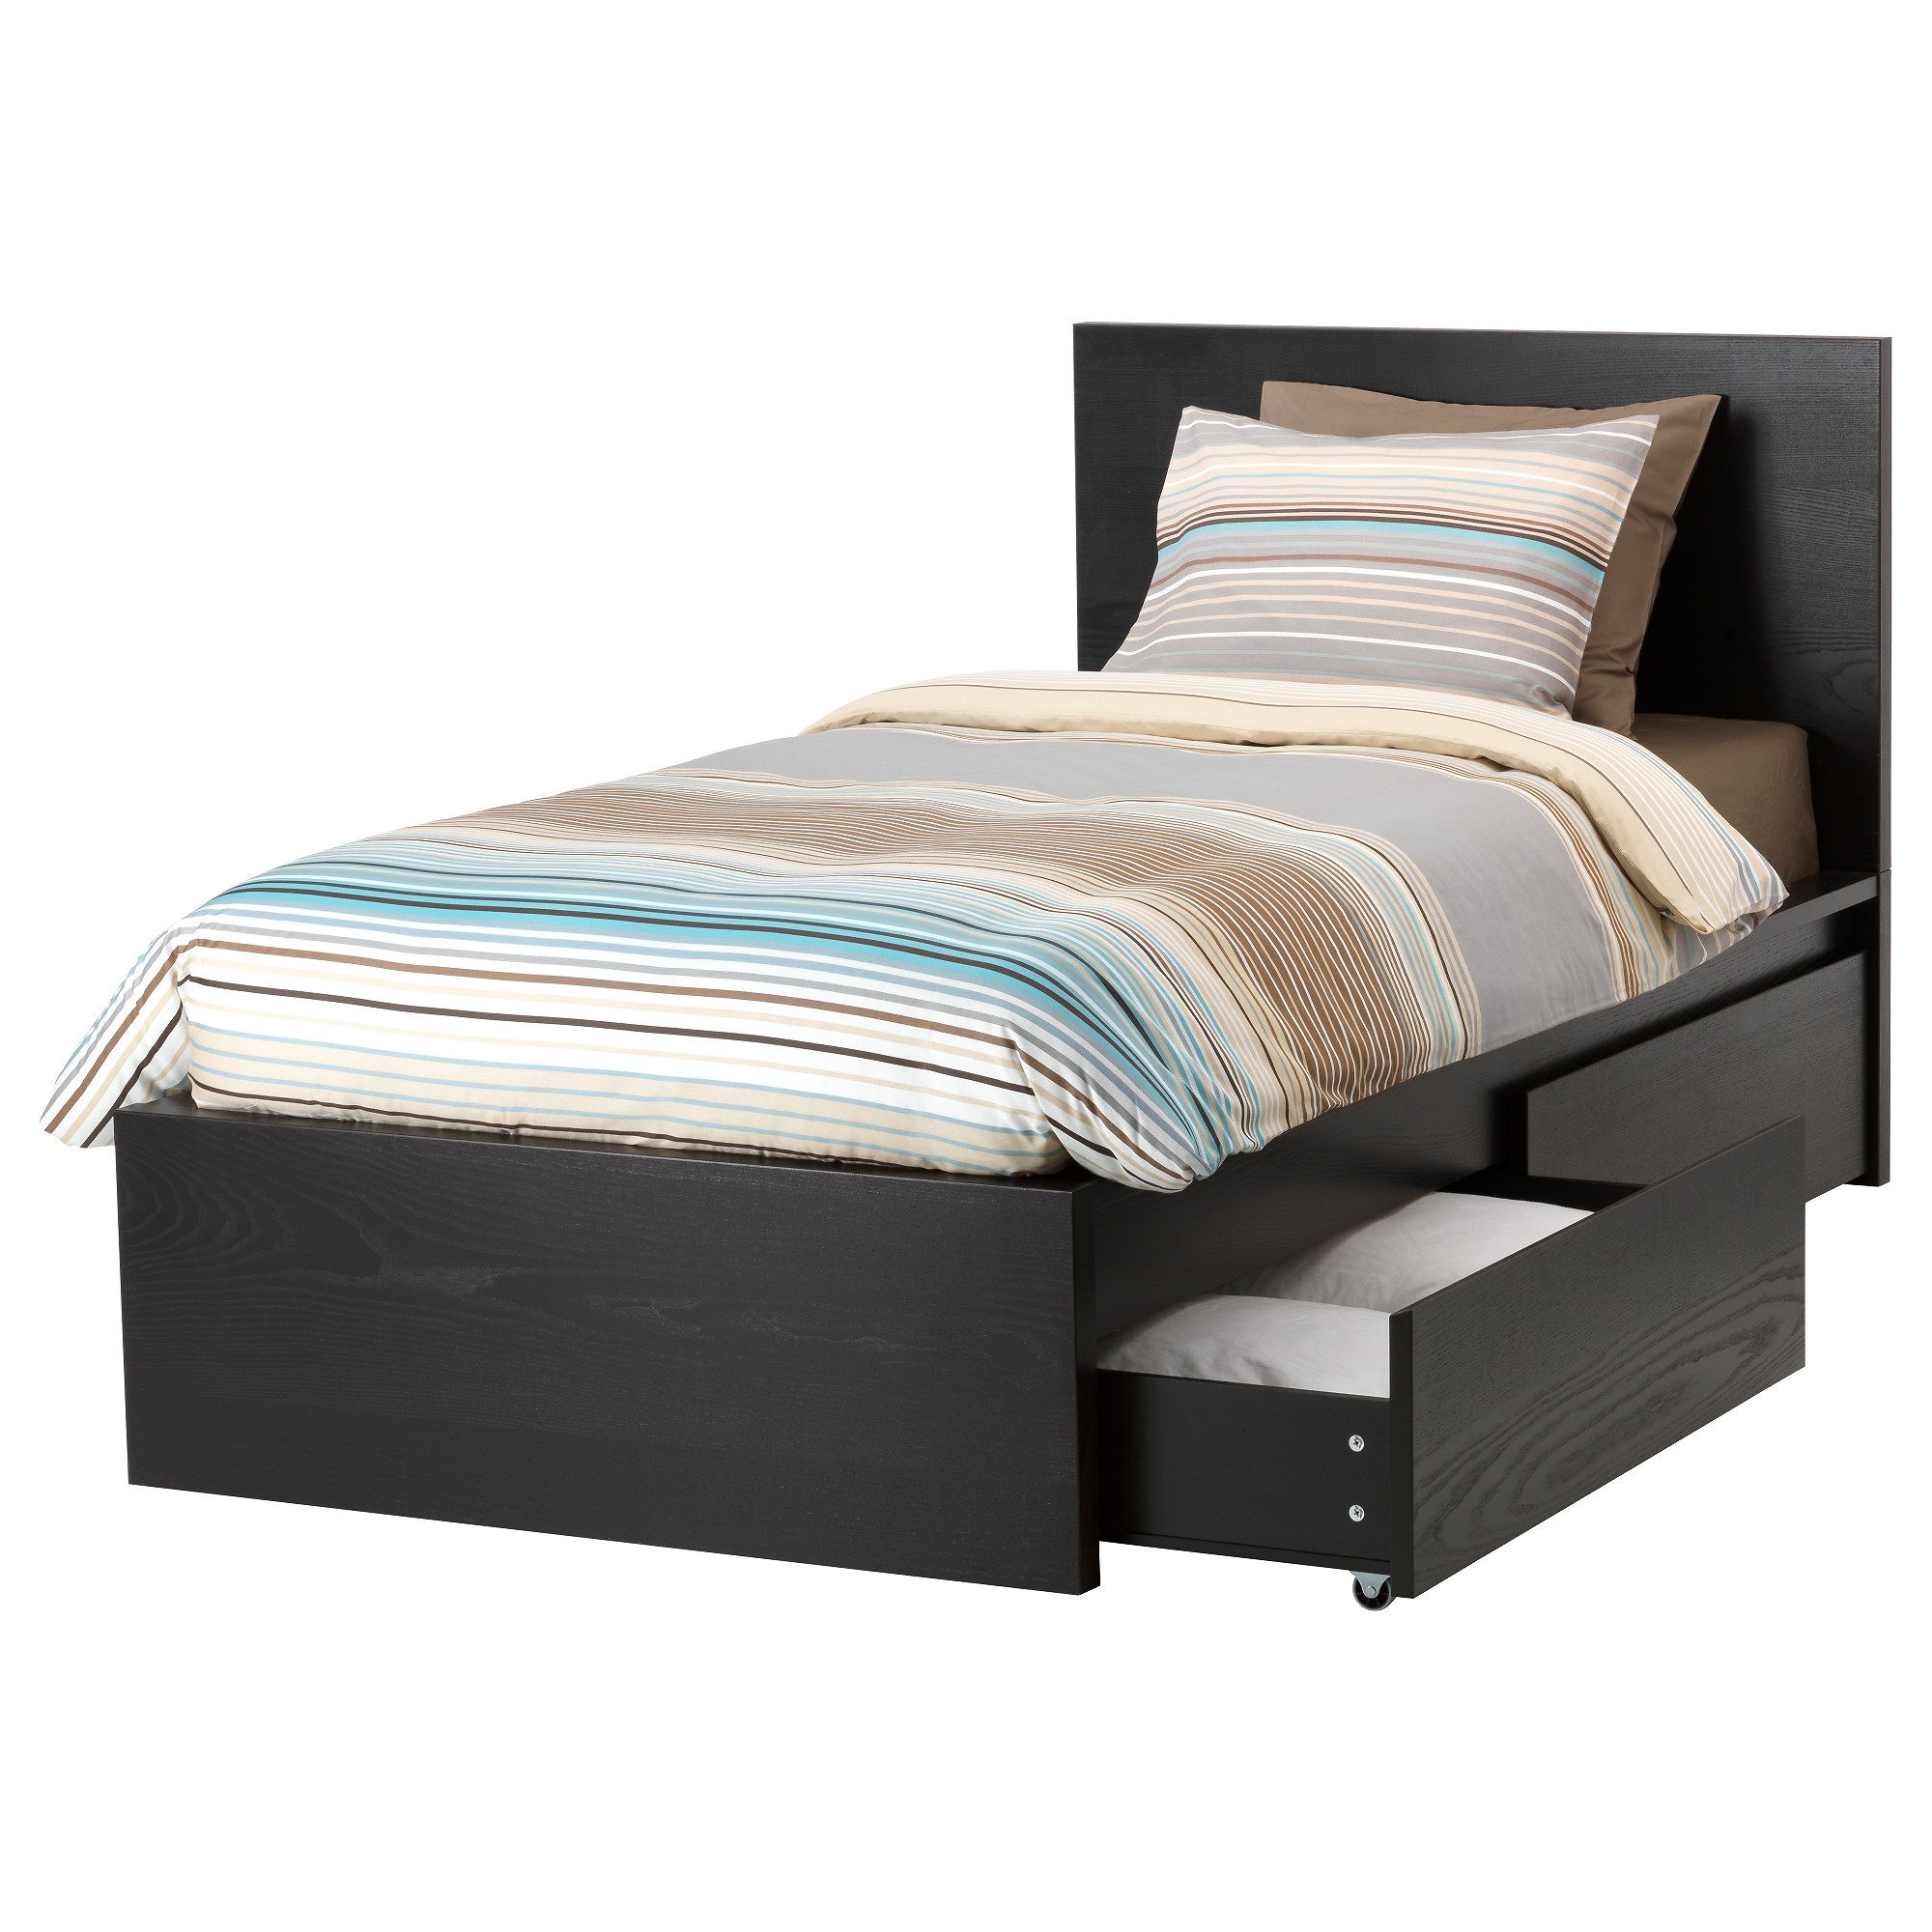 Permalink to Cute Twin Bed Frames